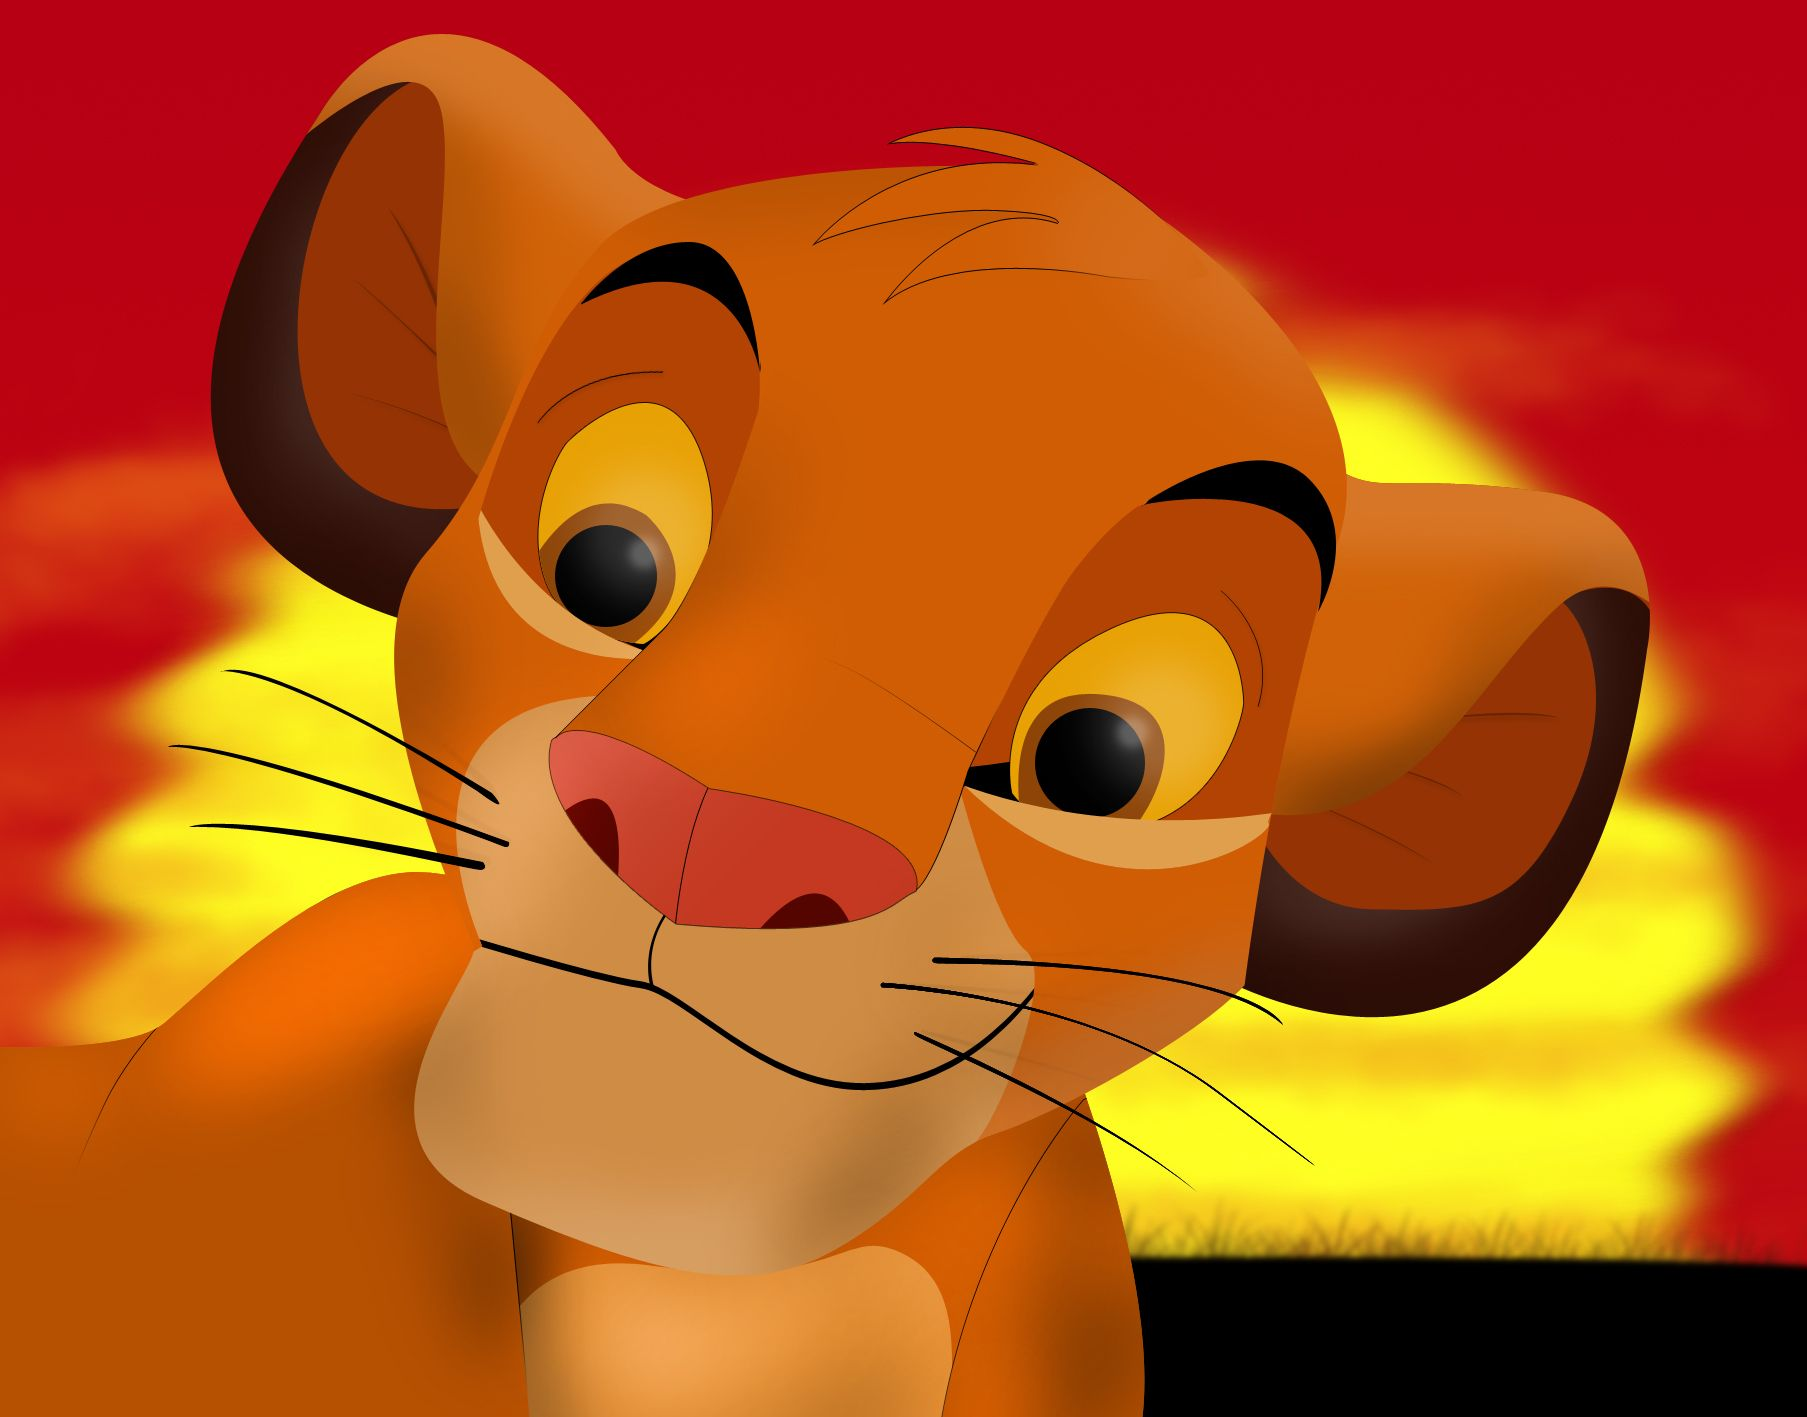 The Lion King A True Disney Classic And My Very First Movie Ever Fotos Del Rey Leon Cumpleanos Rey Leon Rey Leon